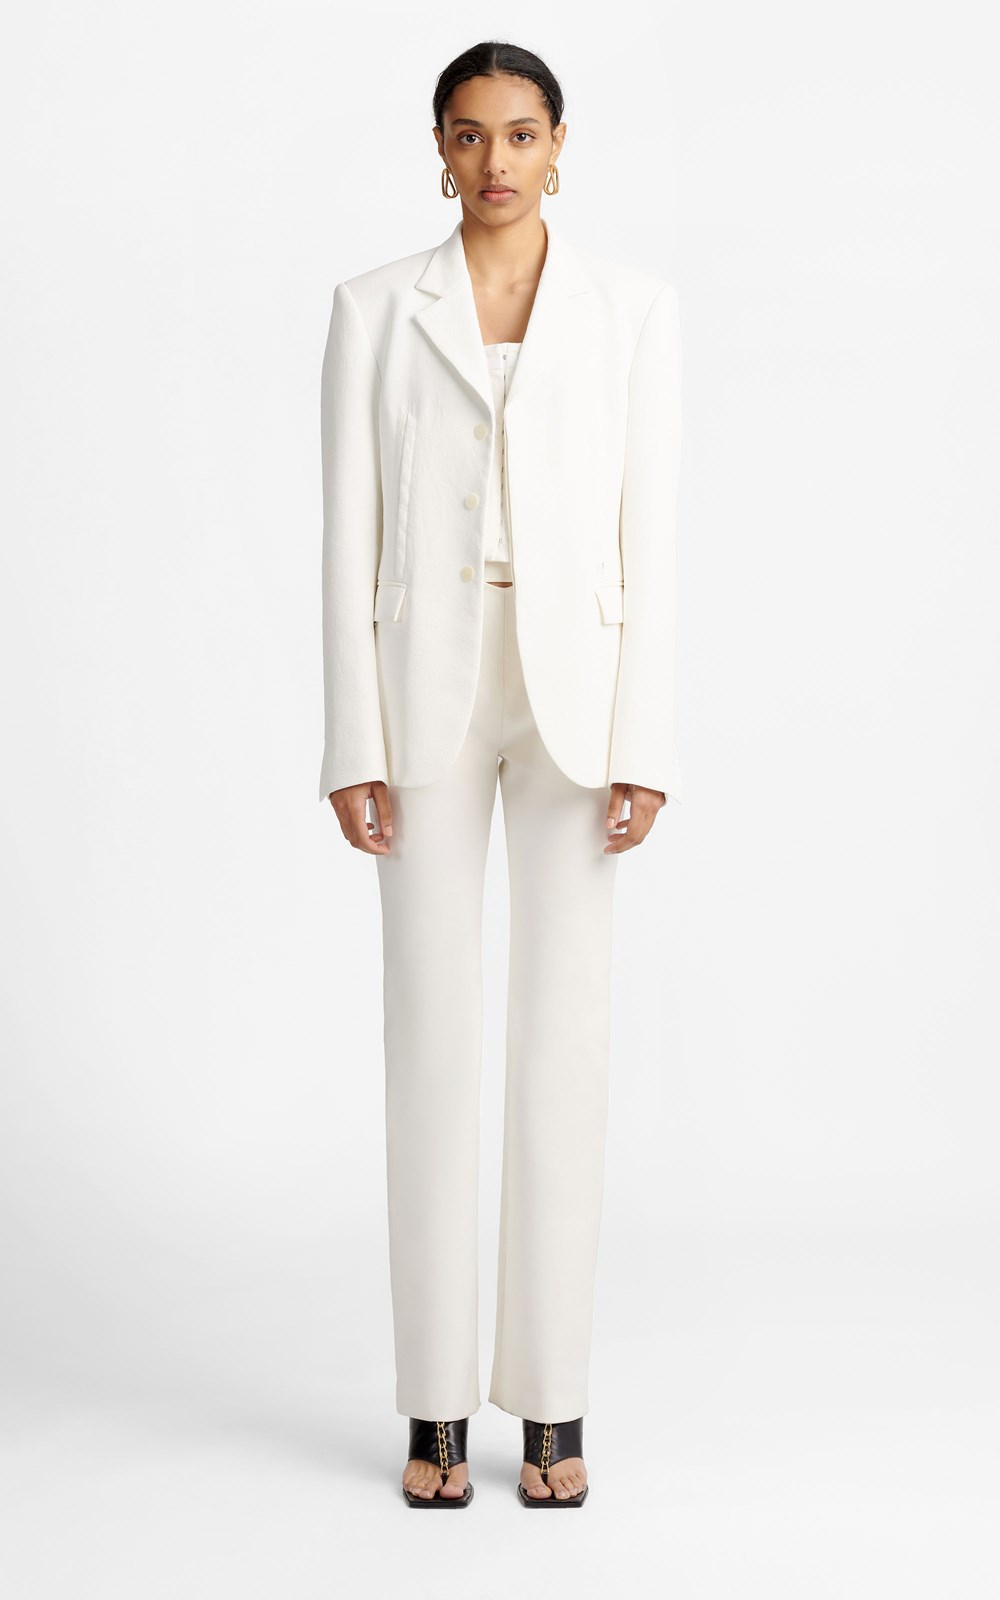 New  | HOOK & EYE WHITEWASH BLAZER